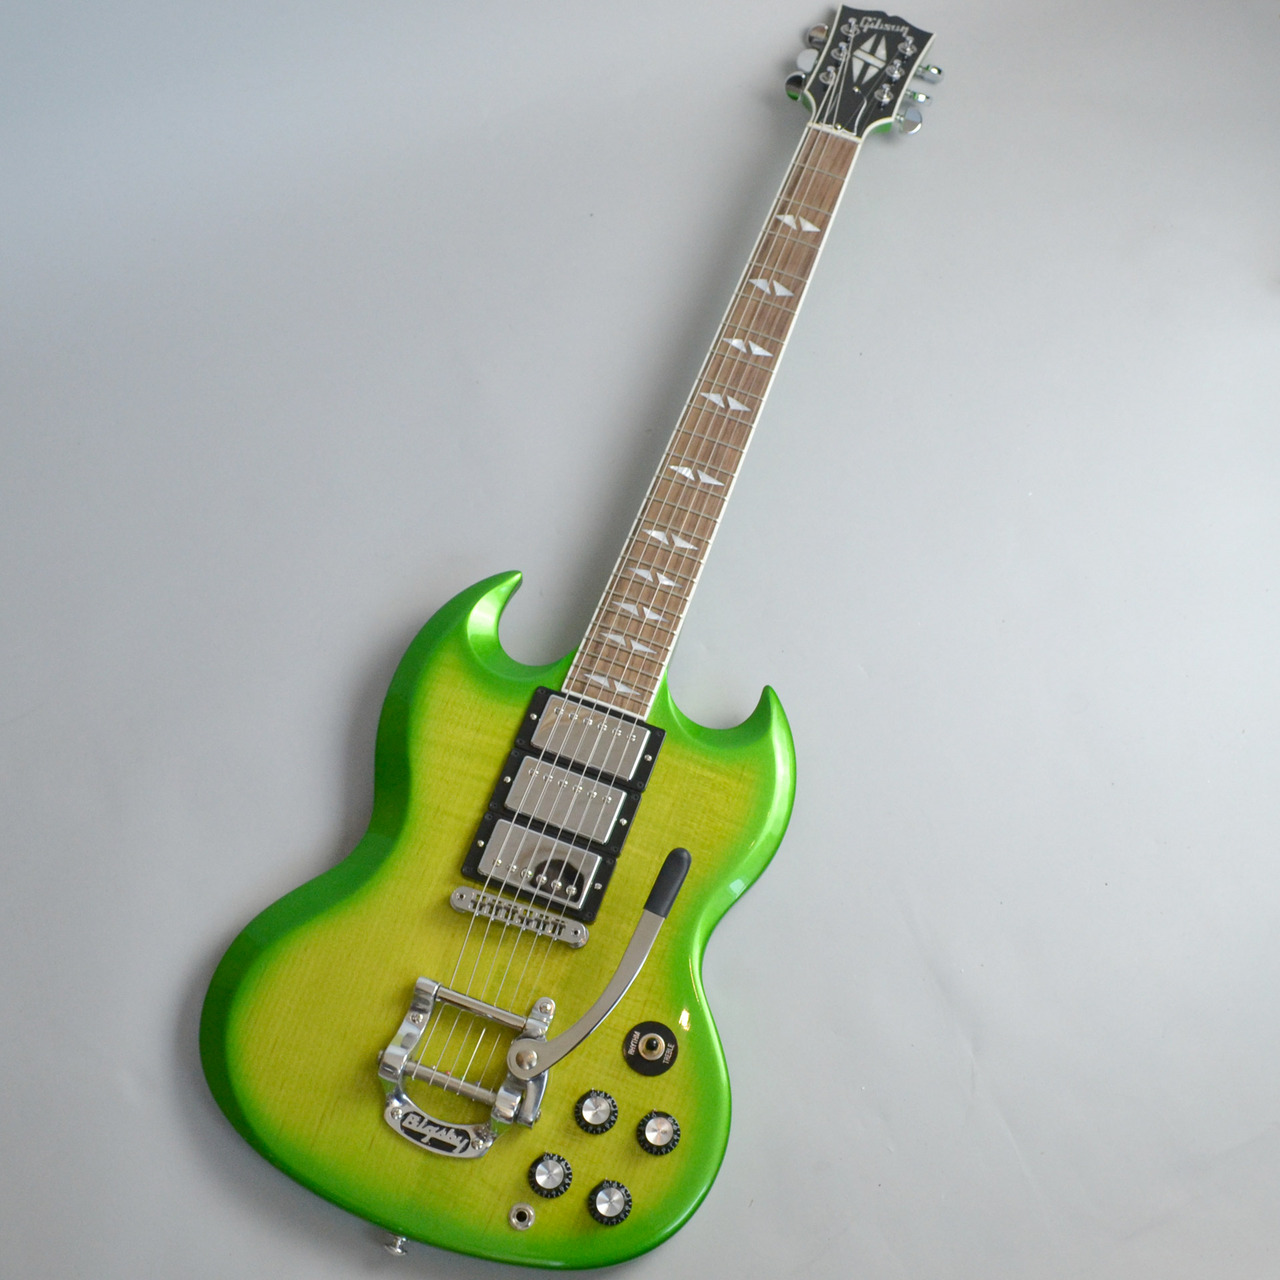 SG Deluxe Lime Burst with Bigsbyのボディトップ-アップ画像